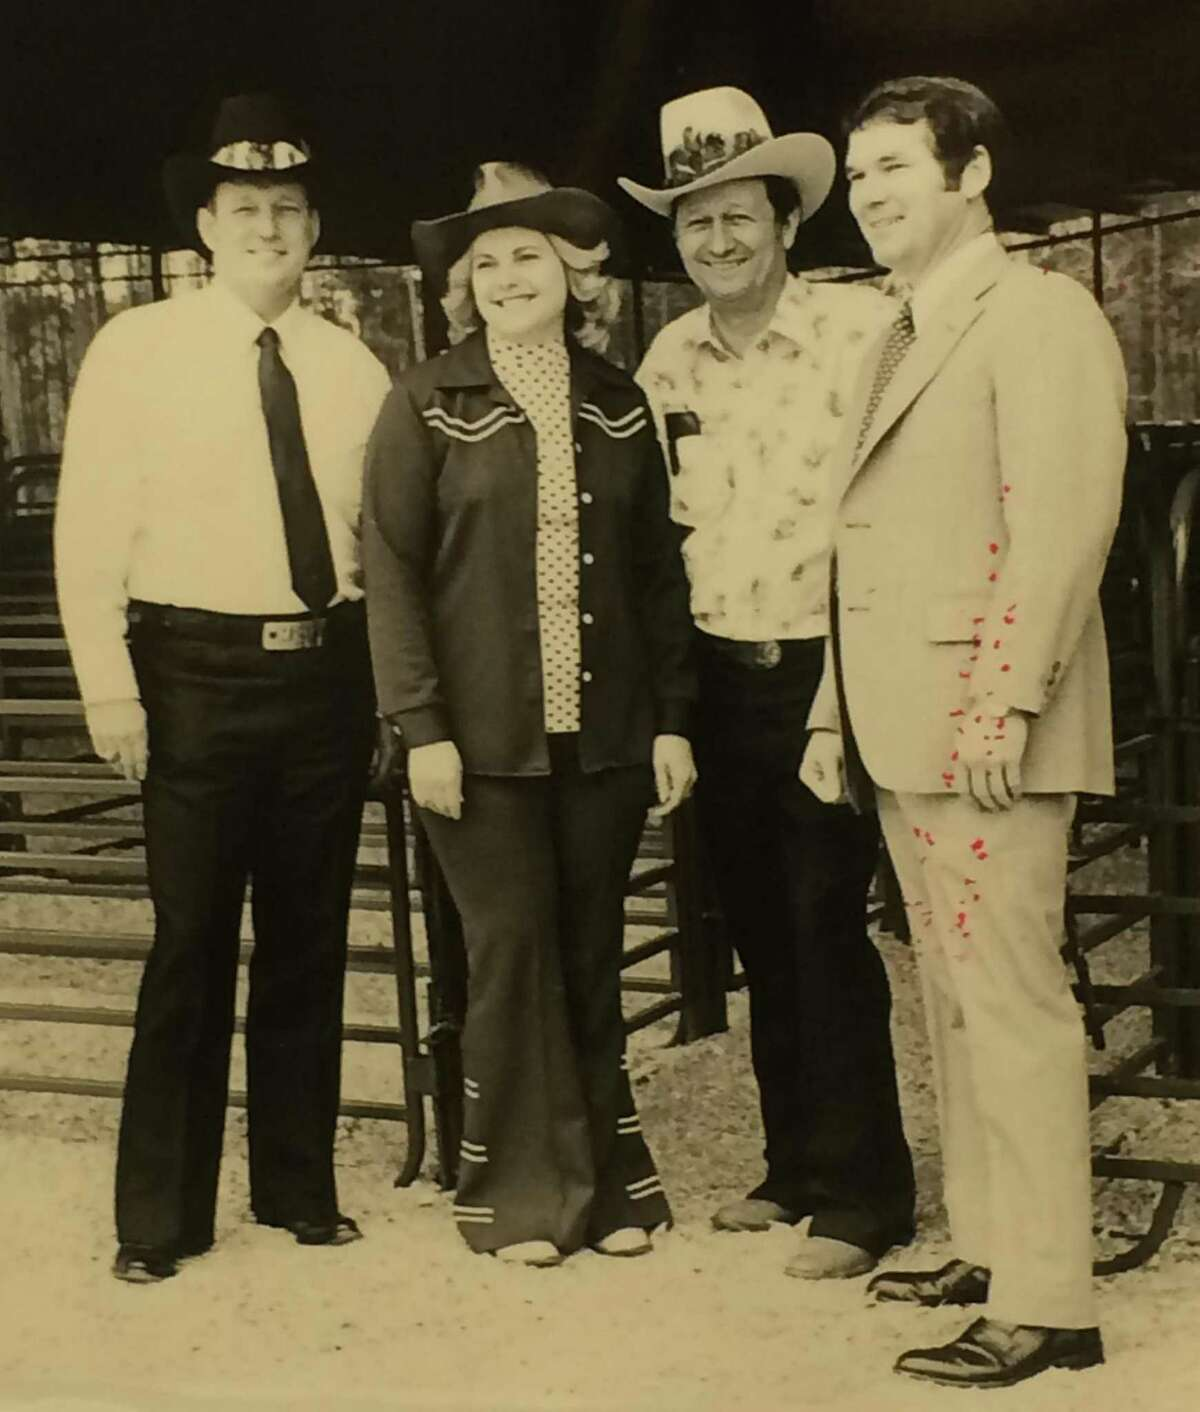 Bill Bergfeld Jr., second from right, is one of the Conroe businessman credited with starting the Go Texan Parade in Conroe. Others pictured from left are Don Buckalew, Martha Gustavson and Fred Greer promoting the Montgomery County Fair.